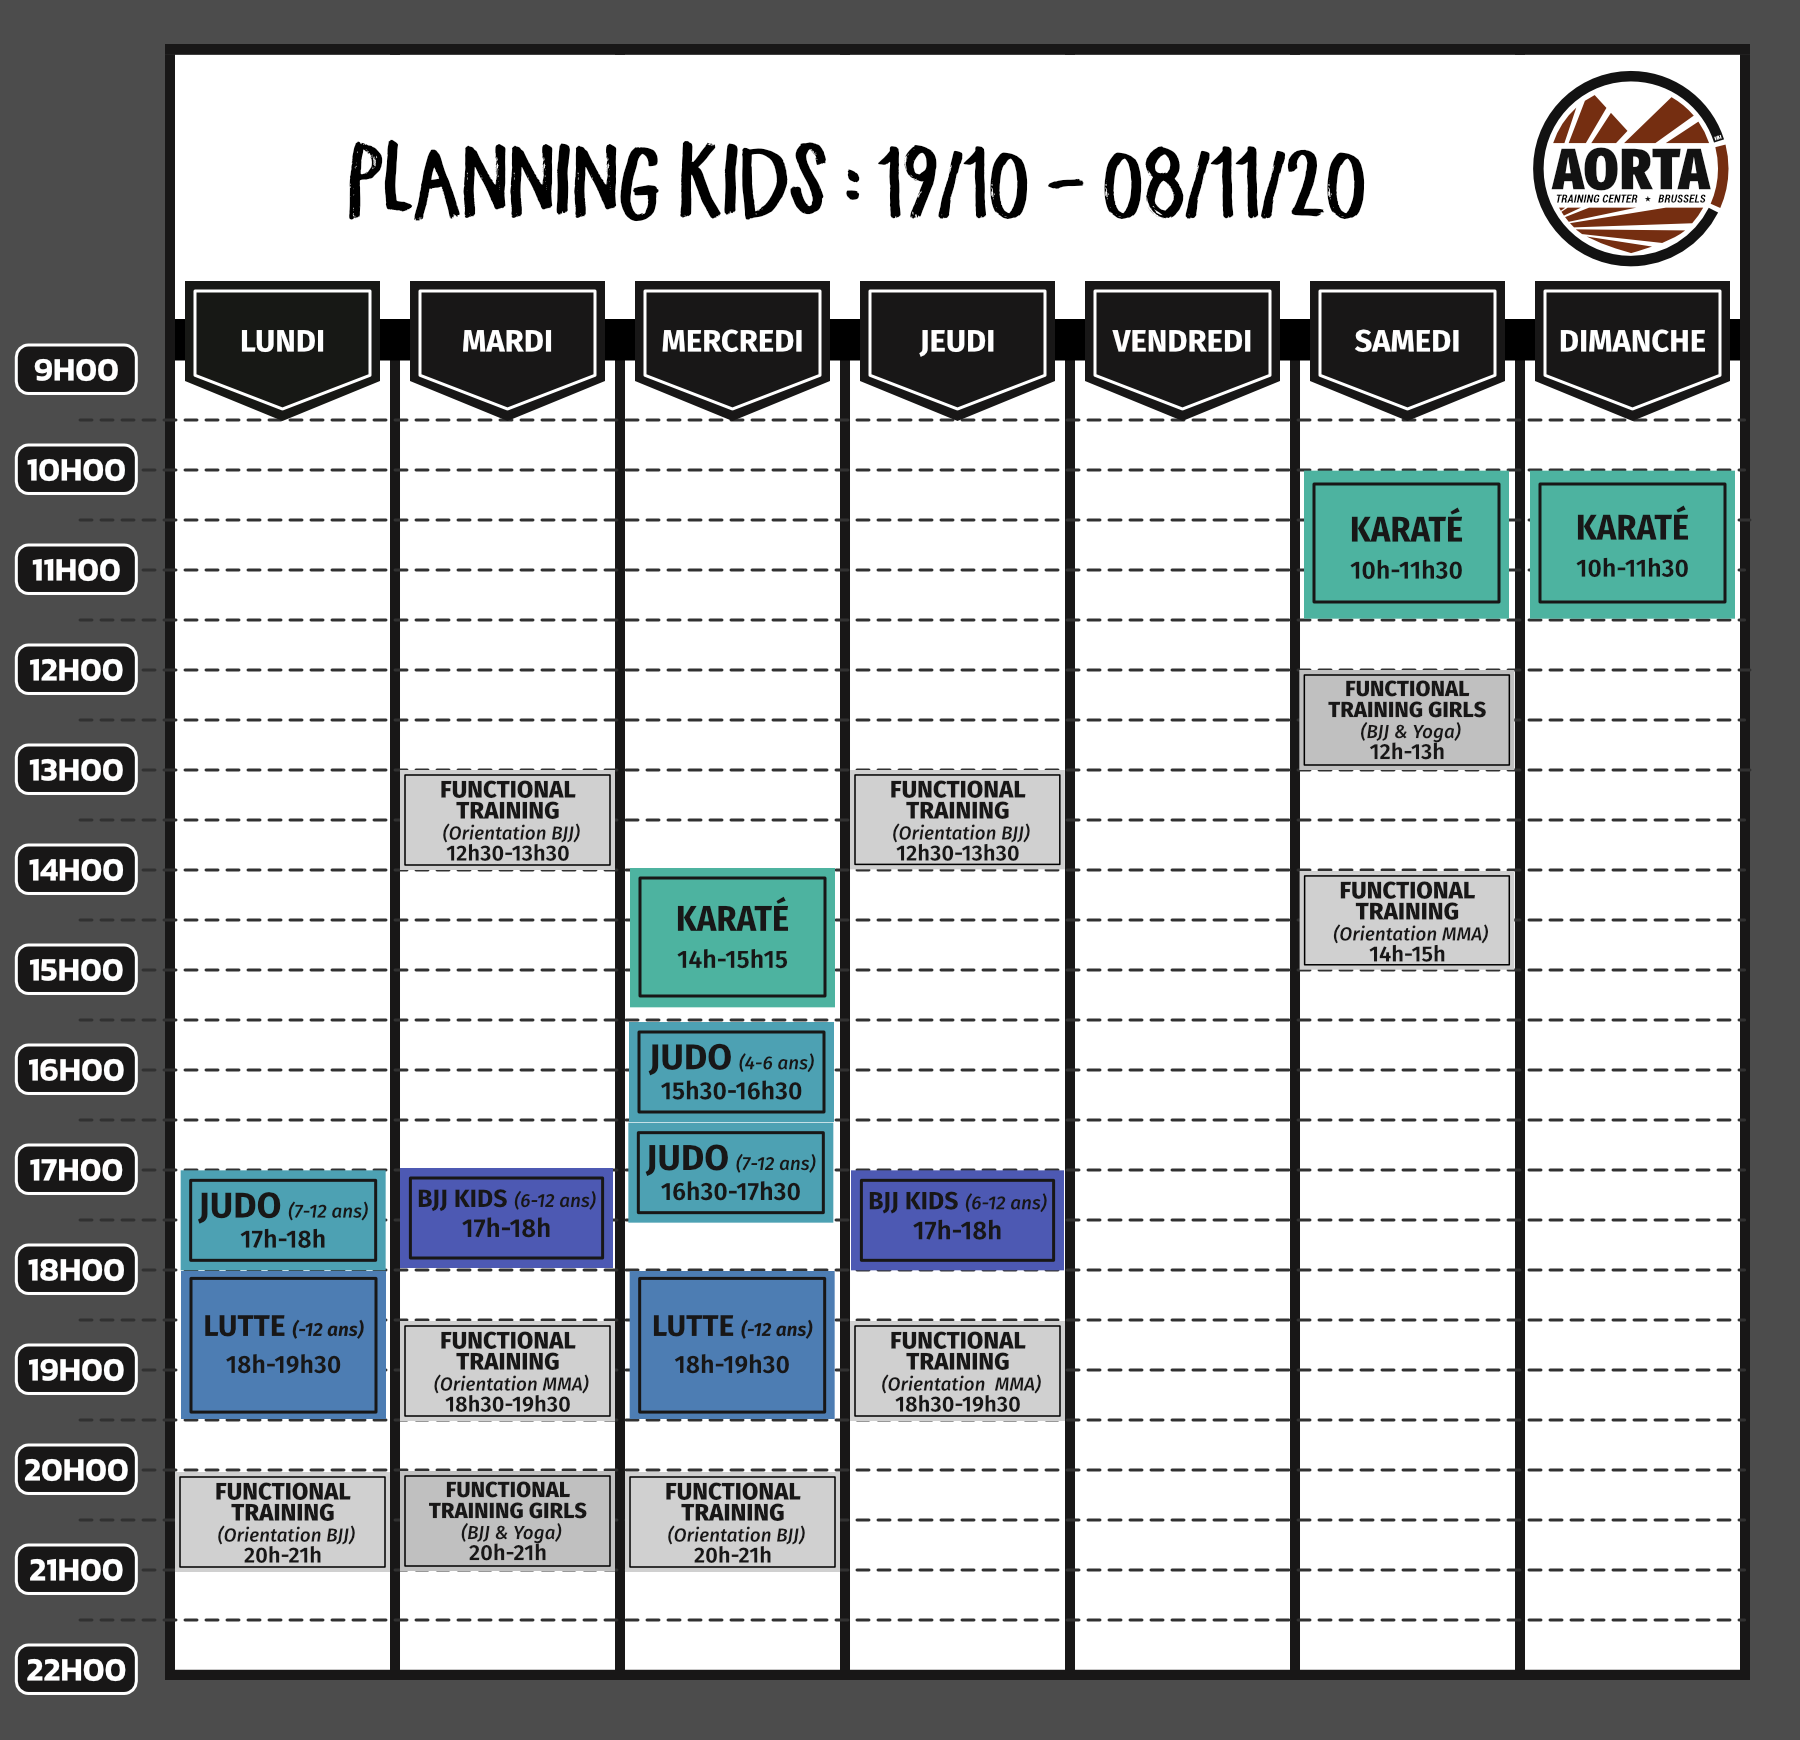 planning kids - special Covid